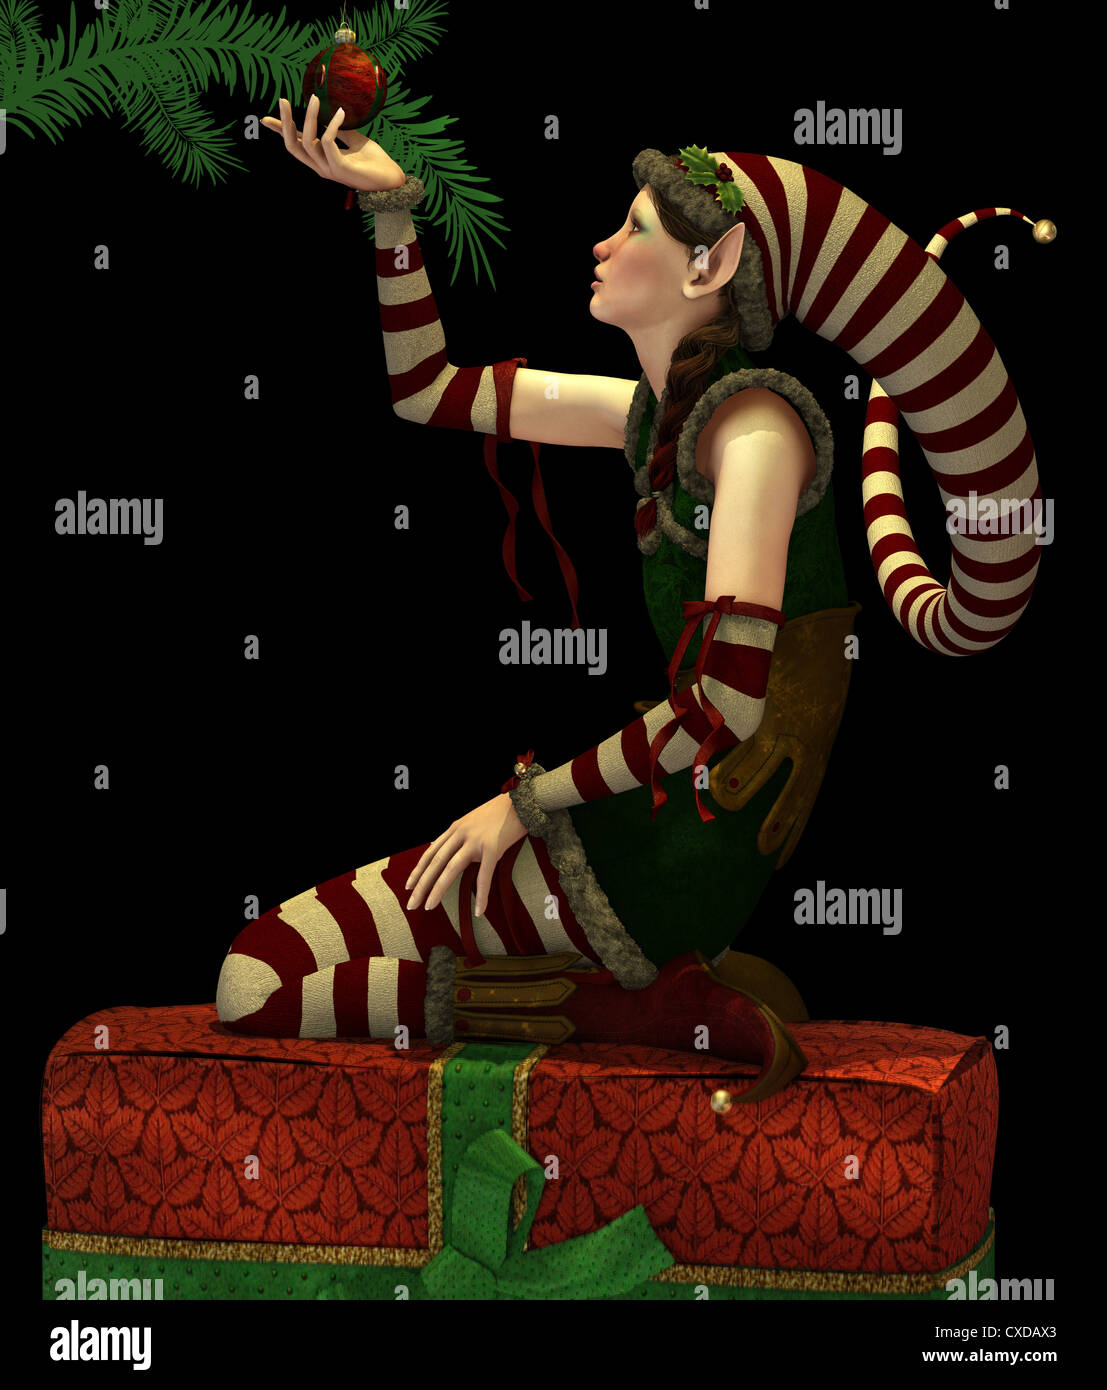 A cute Christmas Elf with pointed cap - Stock Image